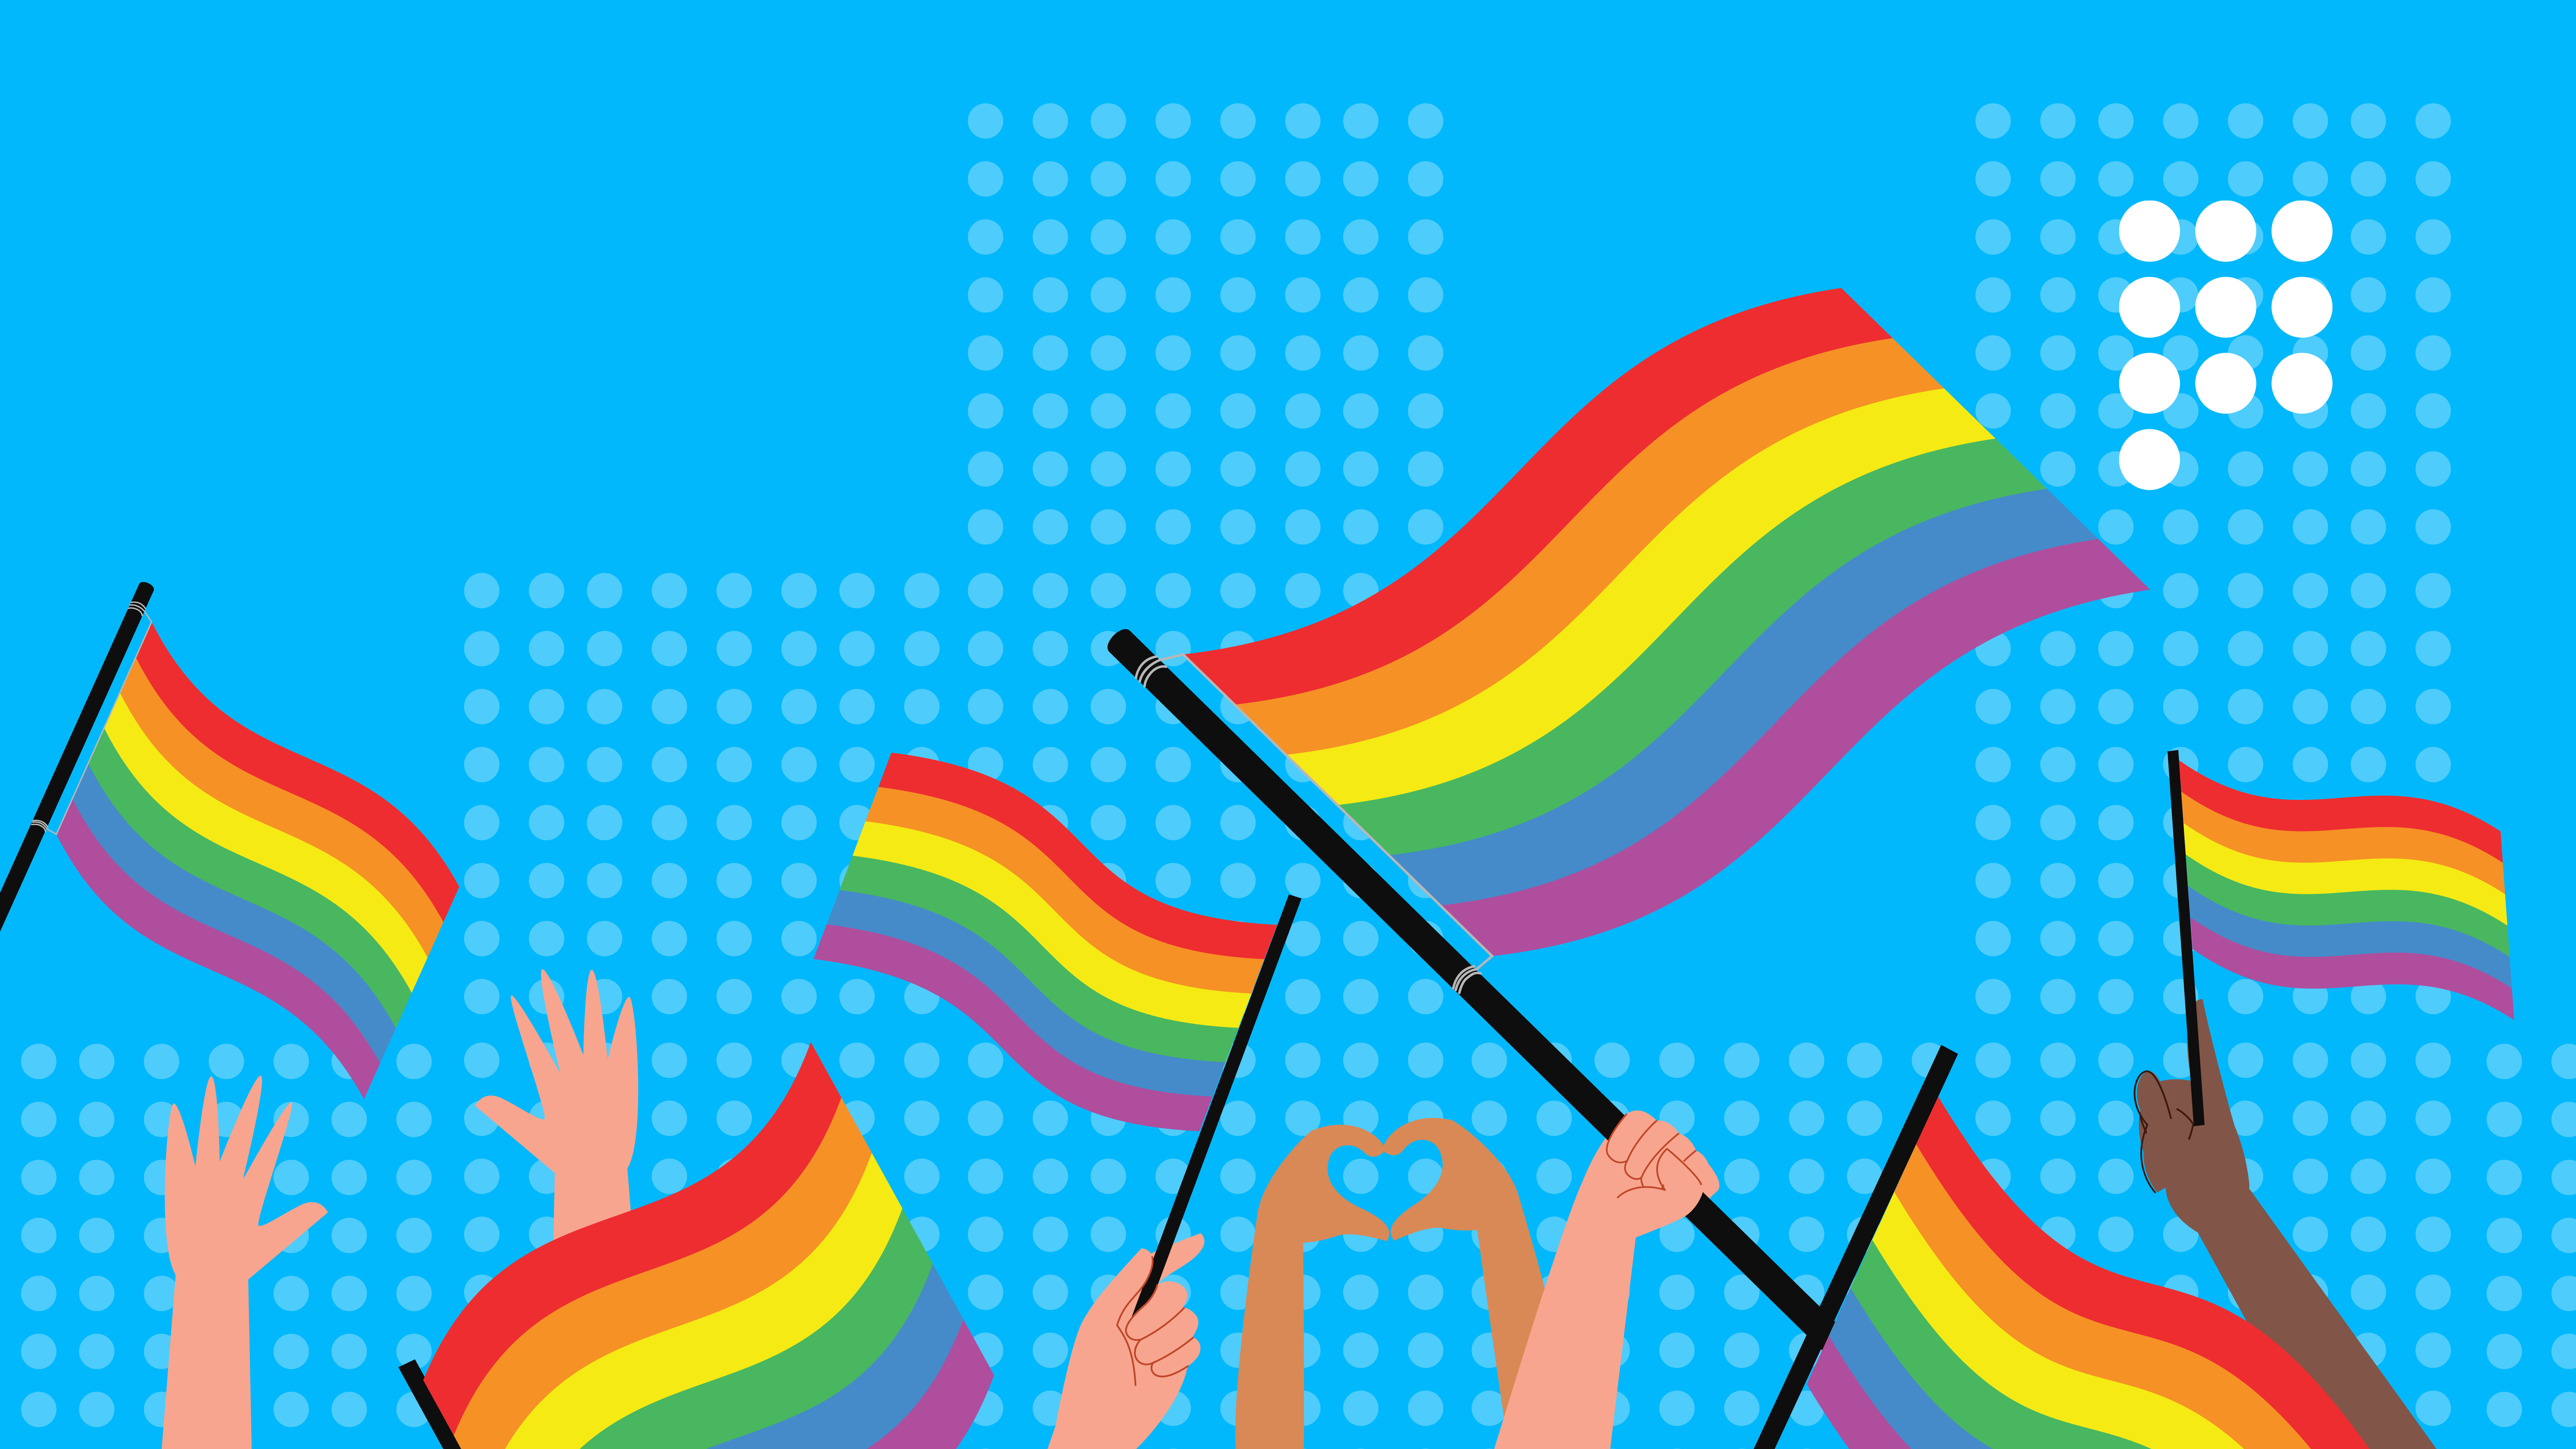 Connecting Our LGBTQ+ Community Starts from Within: 3 Things We Must Consider